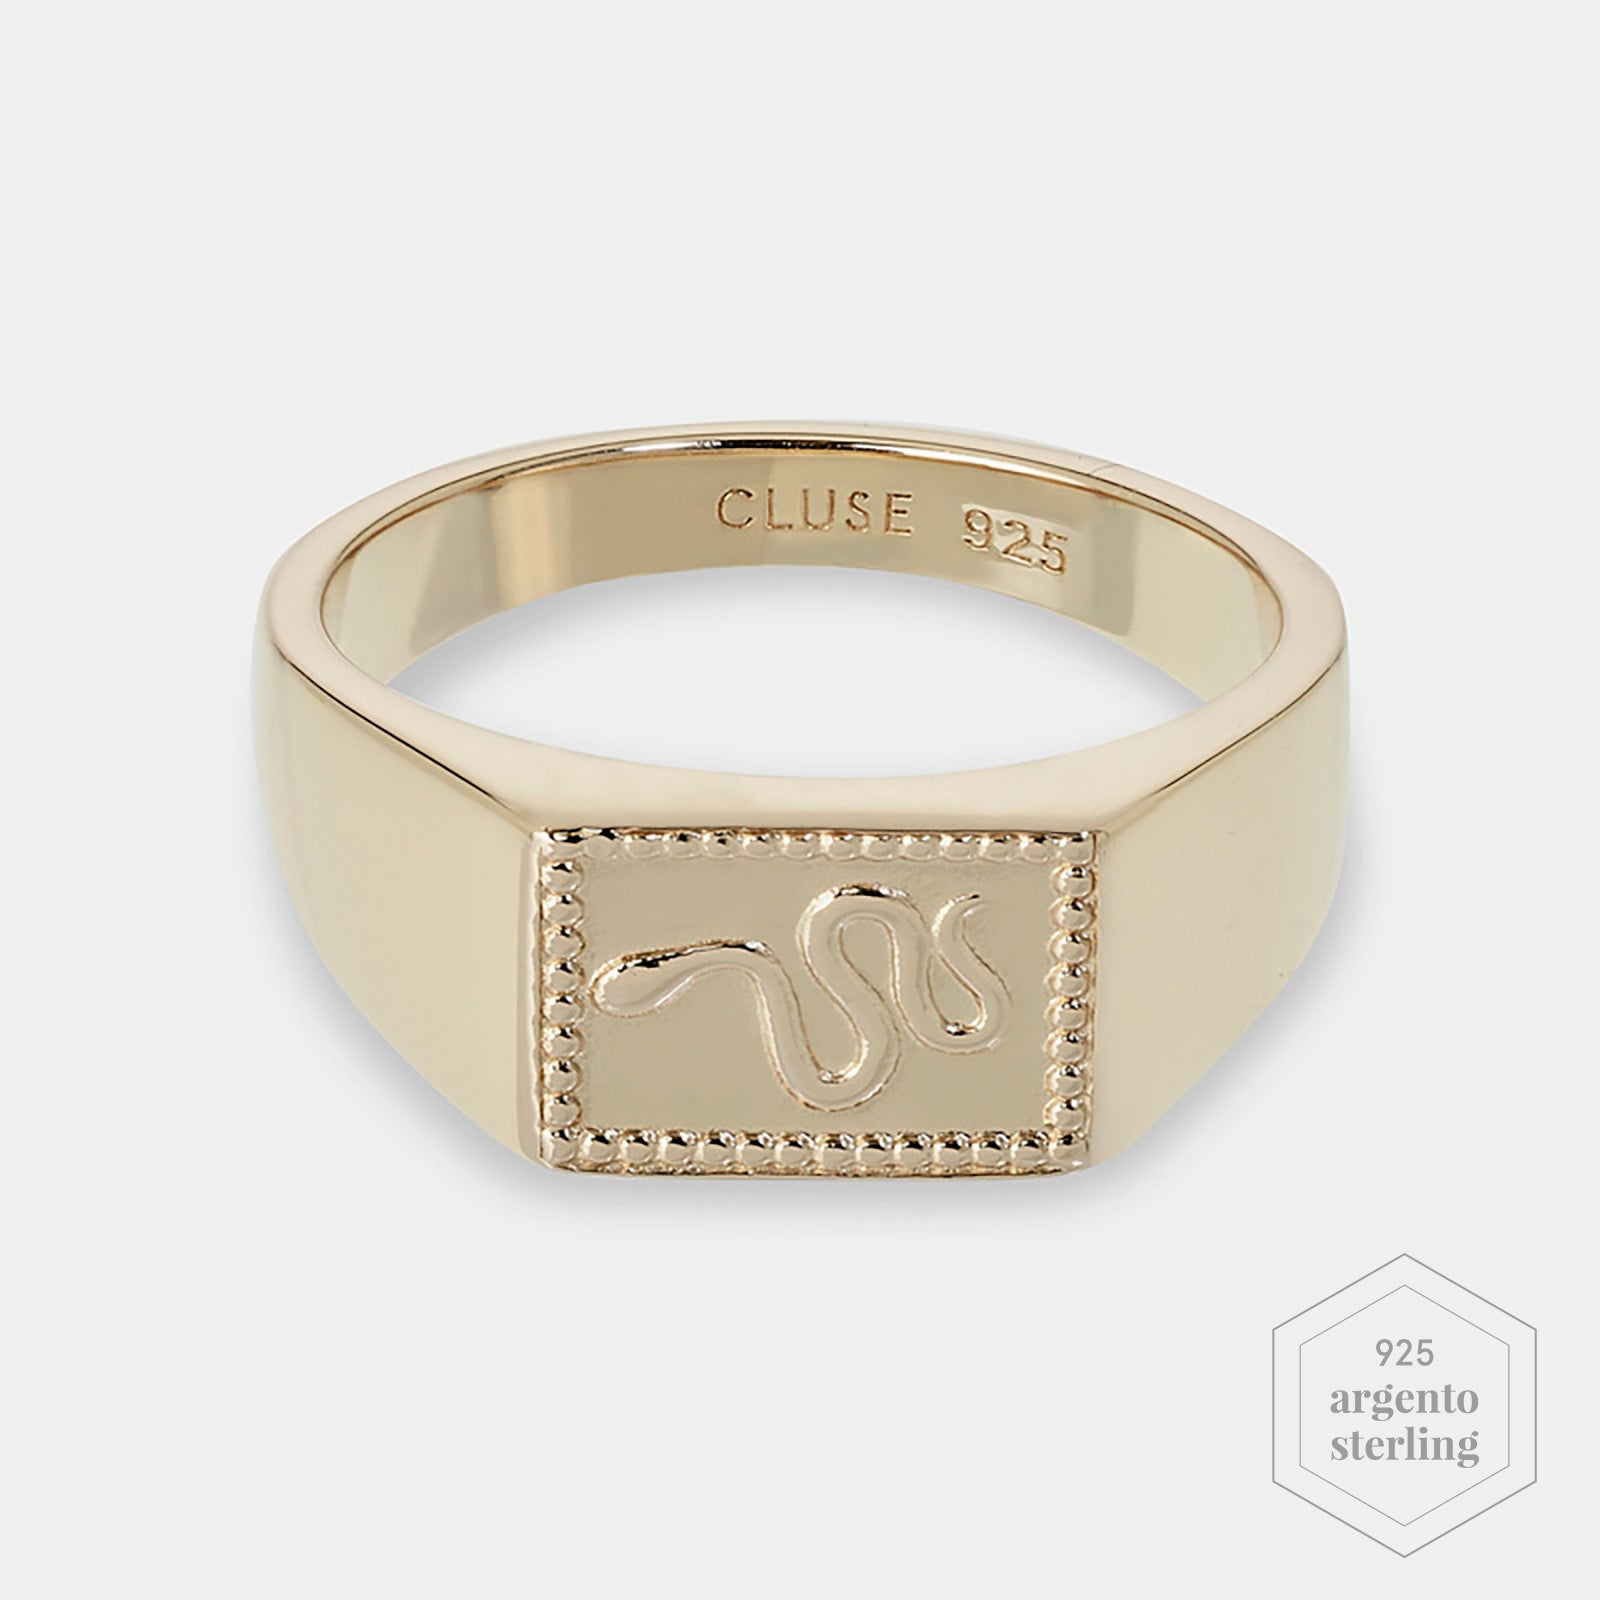 CLUSE Force Tropicale Gold Signet Rectangular Ring 54 CLJ41012-54 - Anello taglia 54